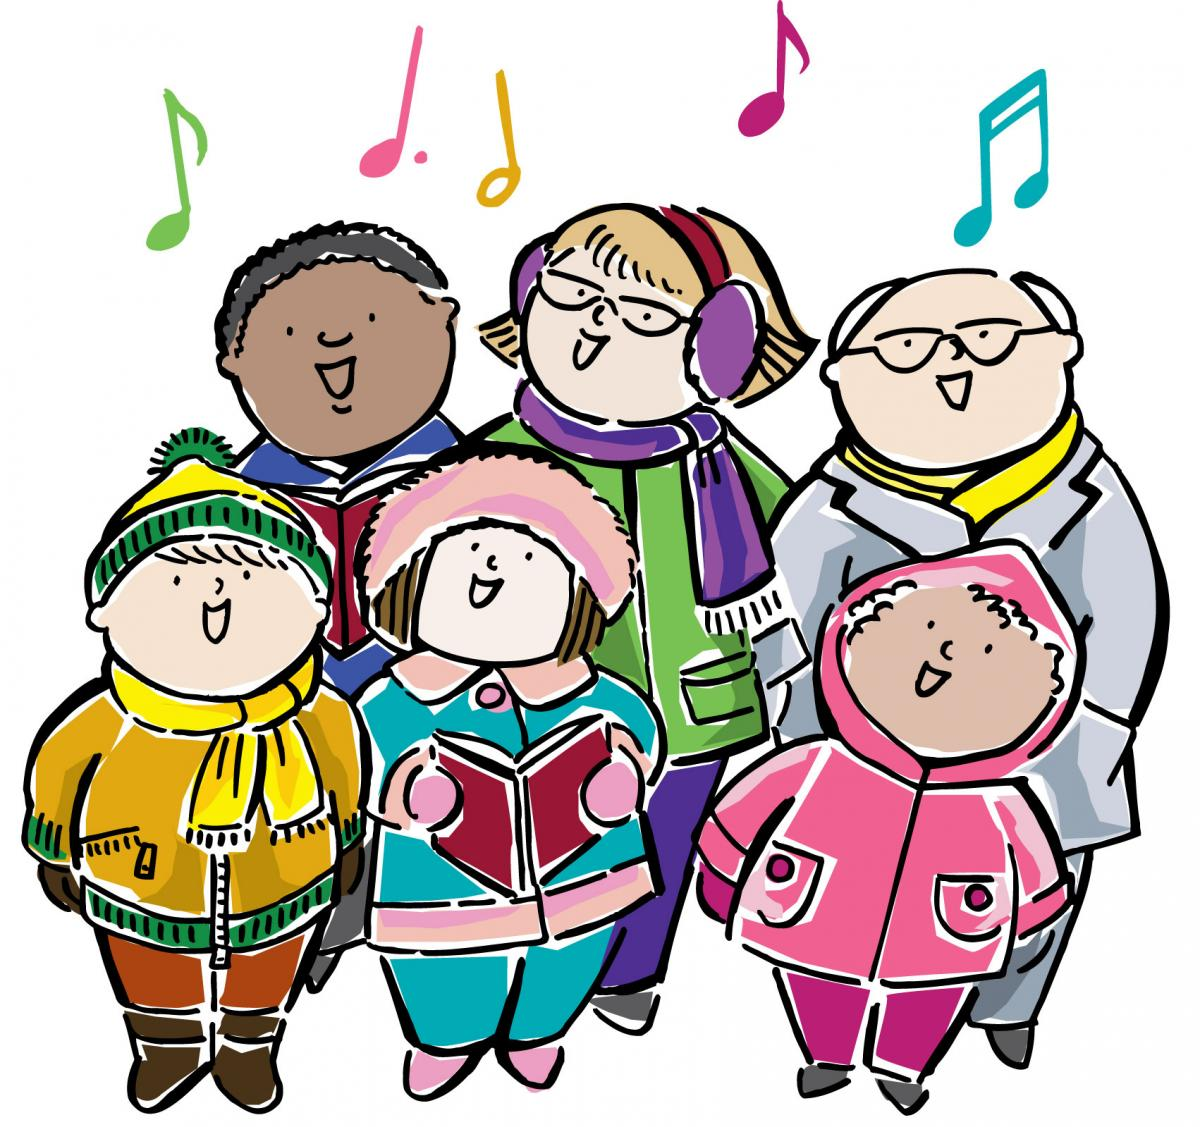 Caroling clipart religious. Youth christmas holy angels